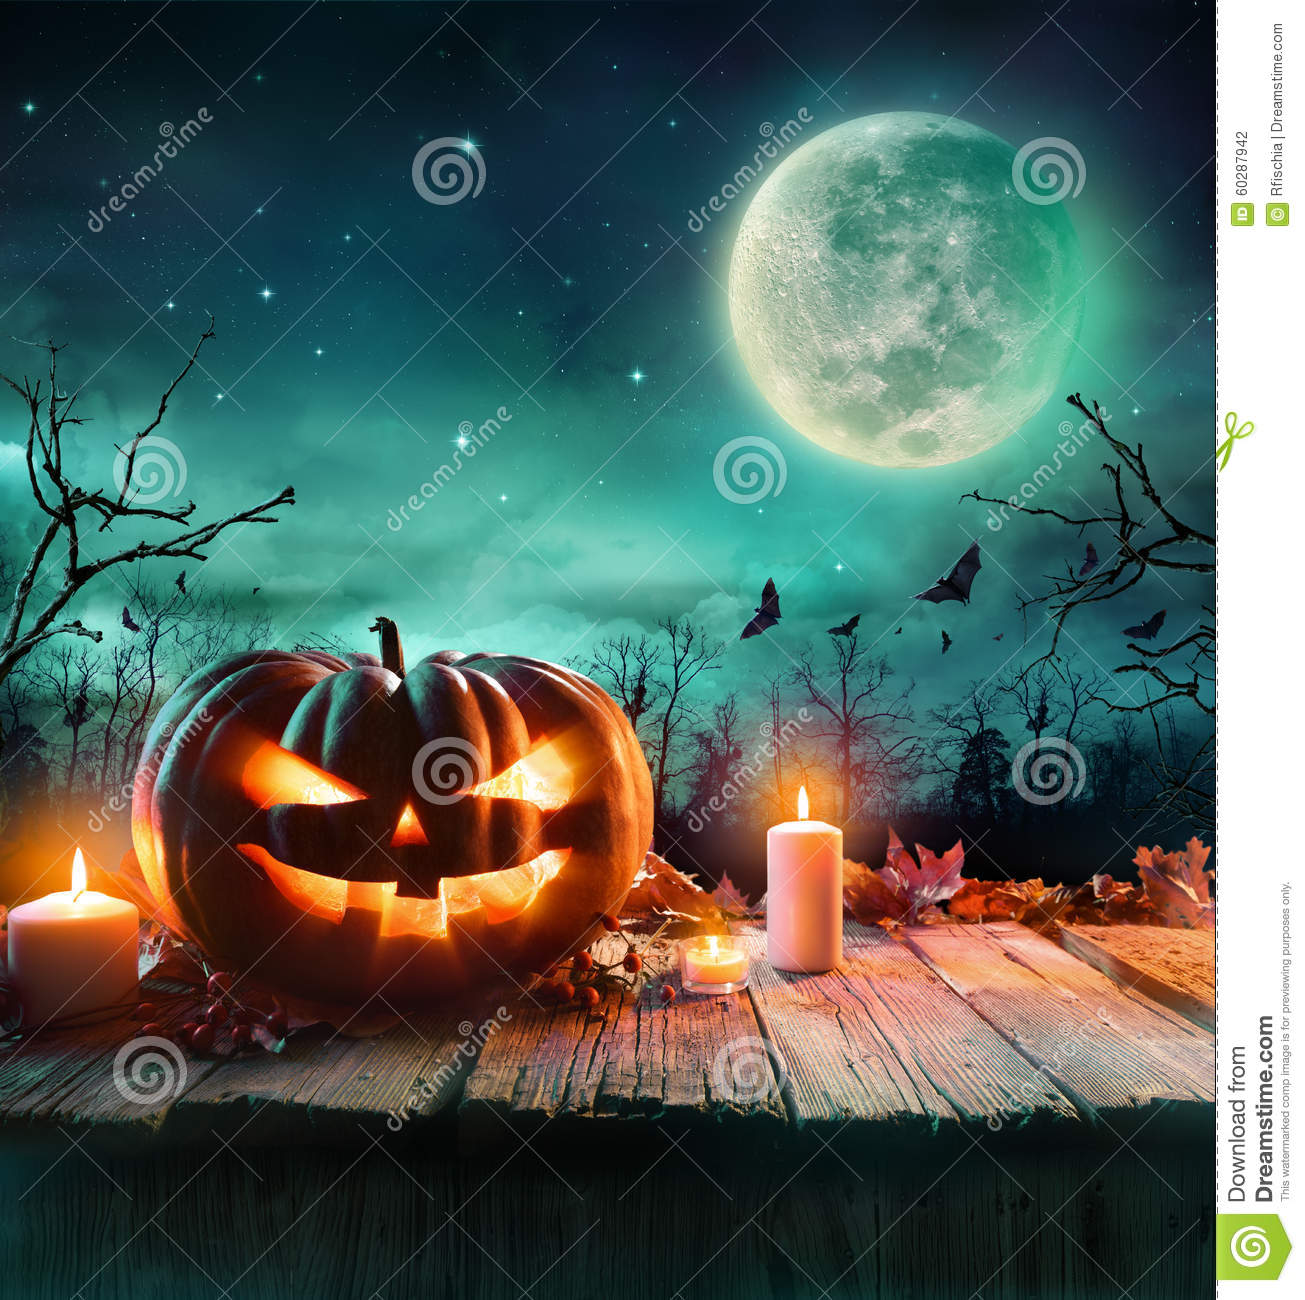 Halloween Pumpkin In A Spooky Forest At Night Stock Photo - Image ...